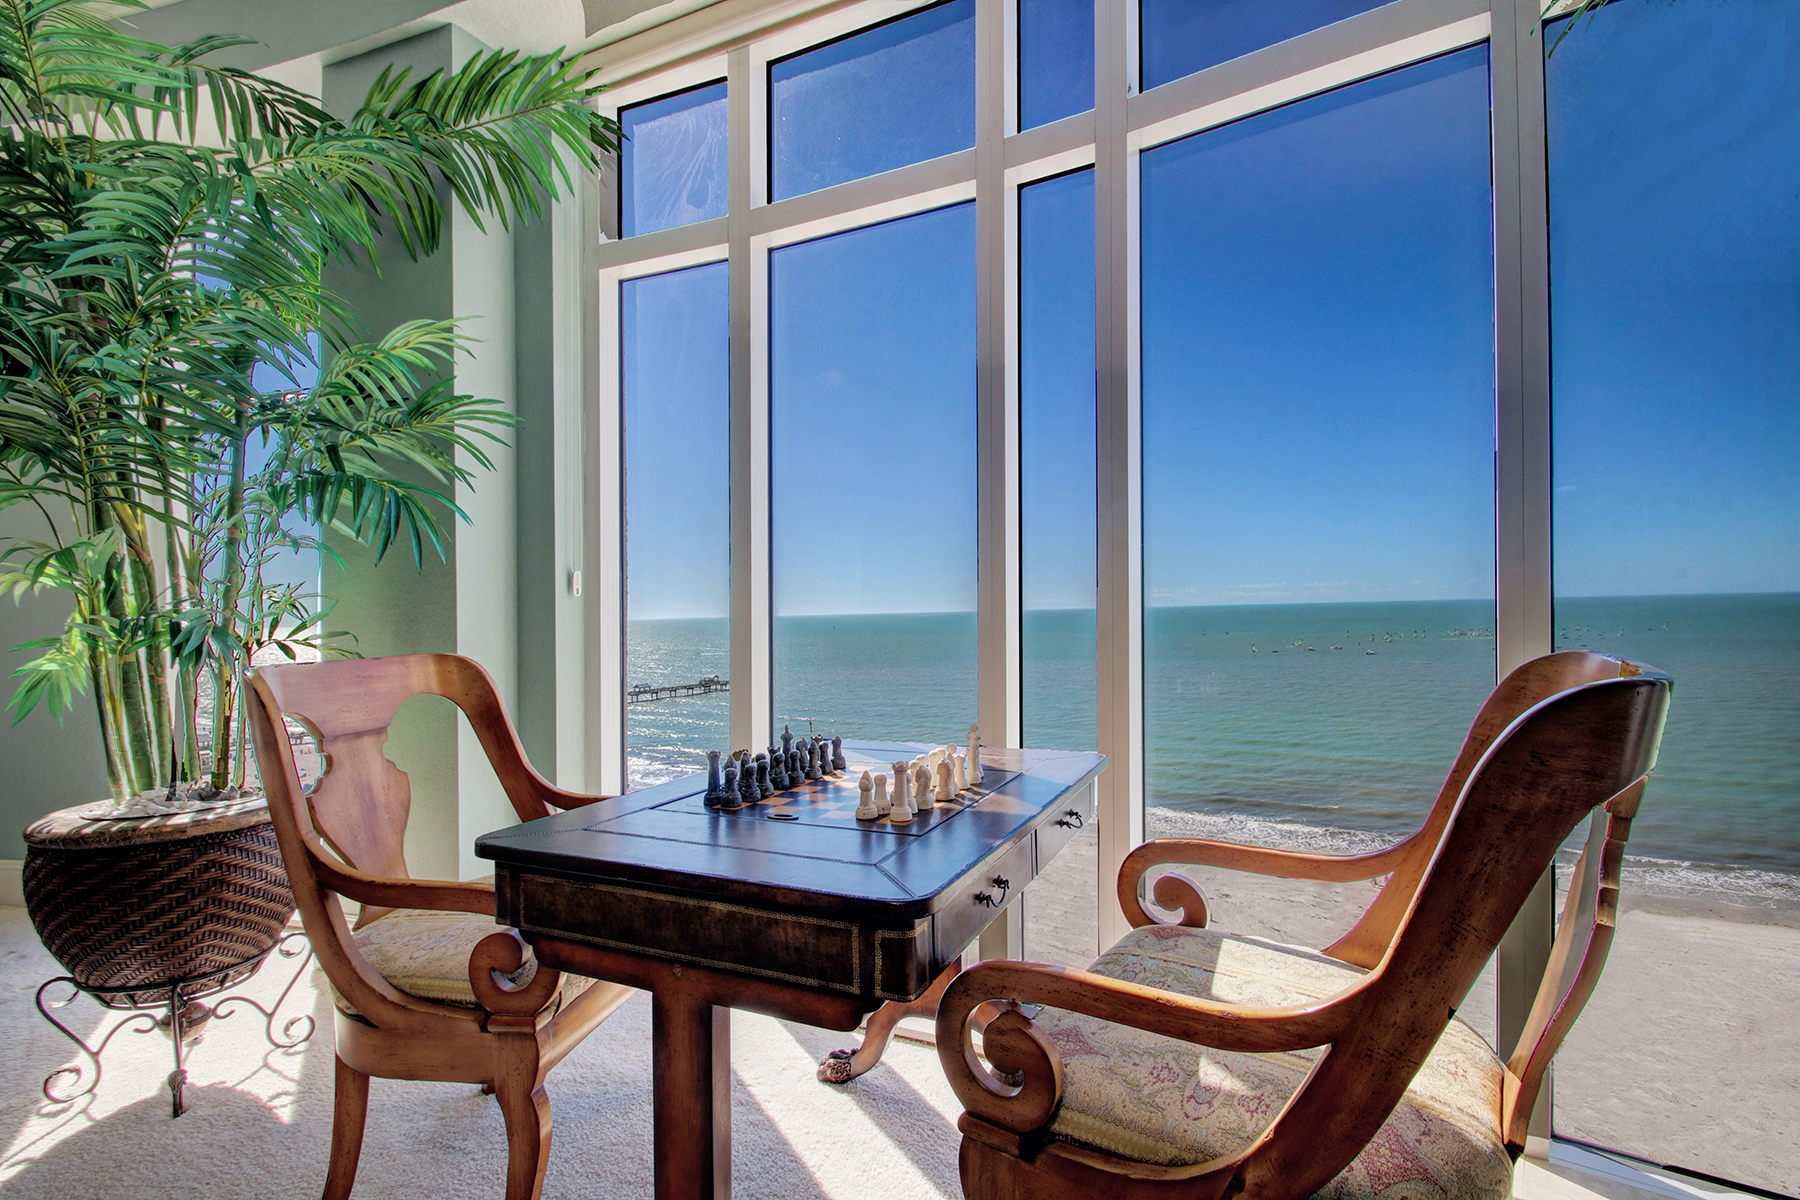 Condominium for Sale at CLEARWATER BEACH 10 Papaya St 1501, Clearwater Beach, Florida 33767 United States